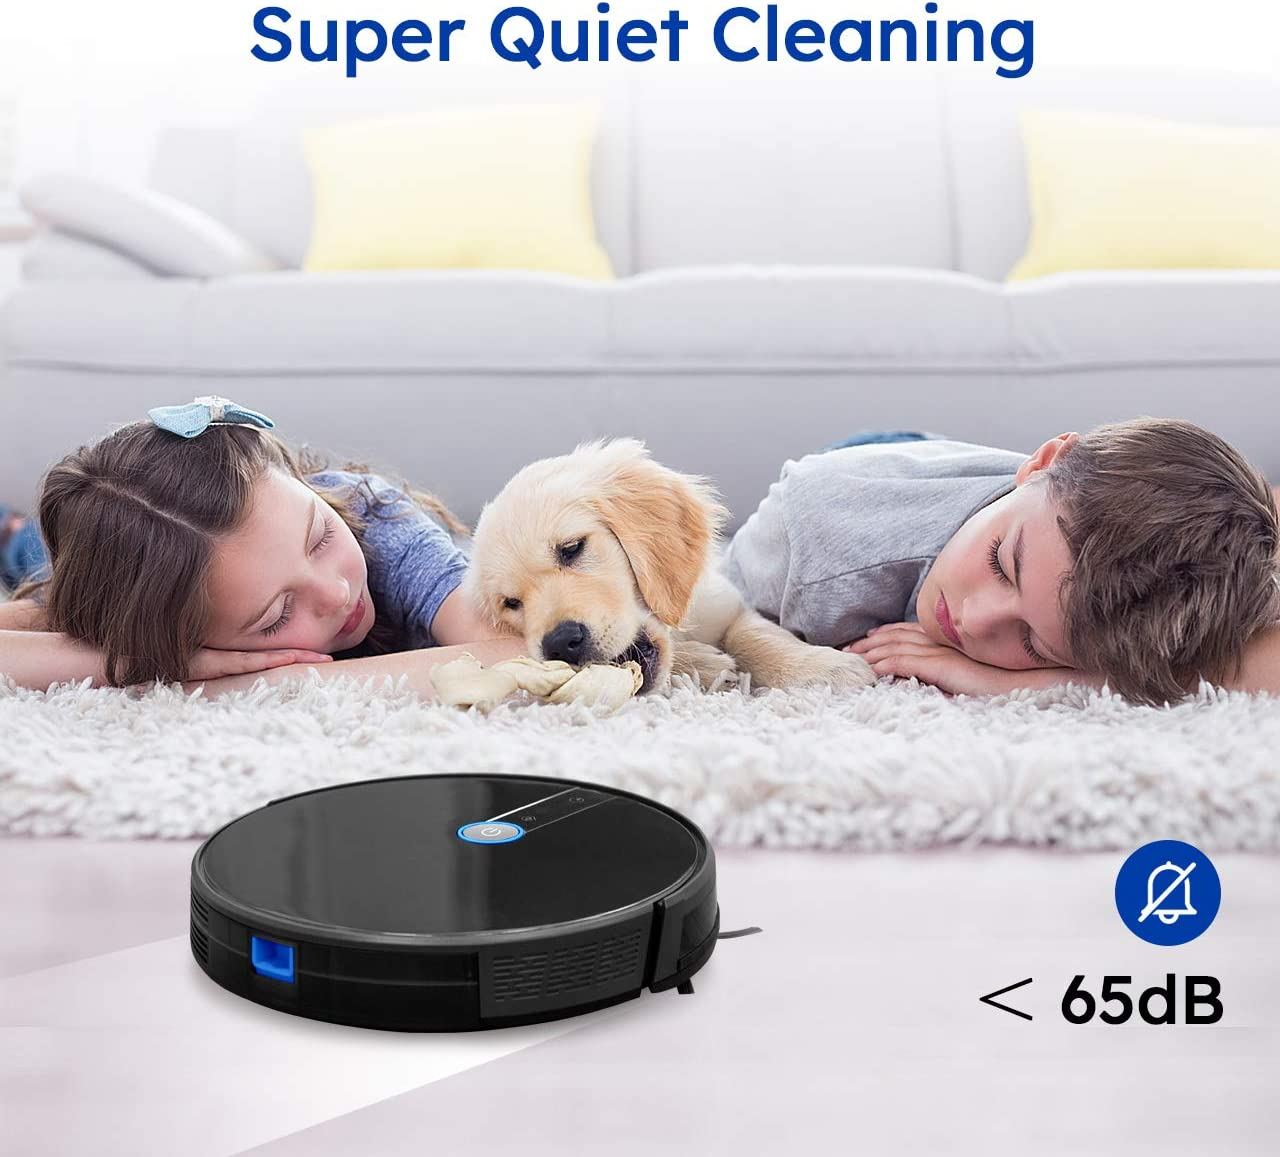 Carpet Vacmaster Robot Vacuum Cleaner 1800Pa Suction 2.9 Slim Quiet Automatic Smart Sensor Protection Hard Floor Self-Charge Robotic Vacuum with Smart Mapping High Performing for Pet Hair